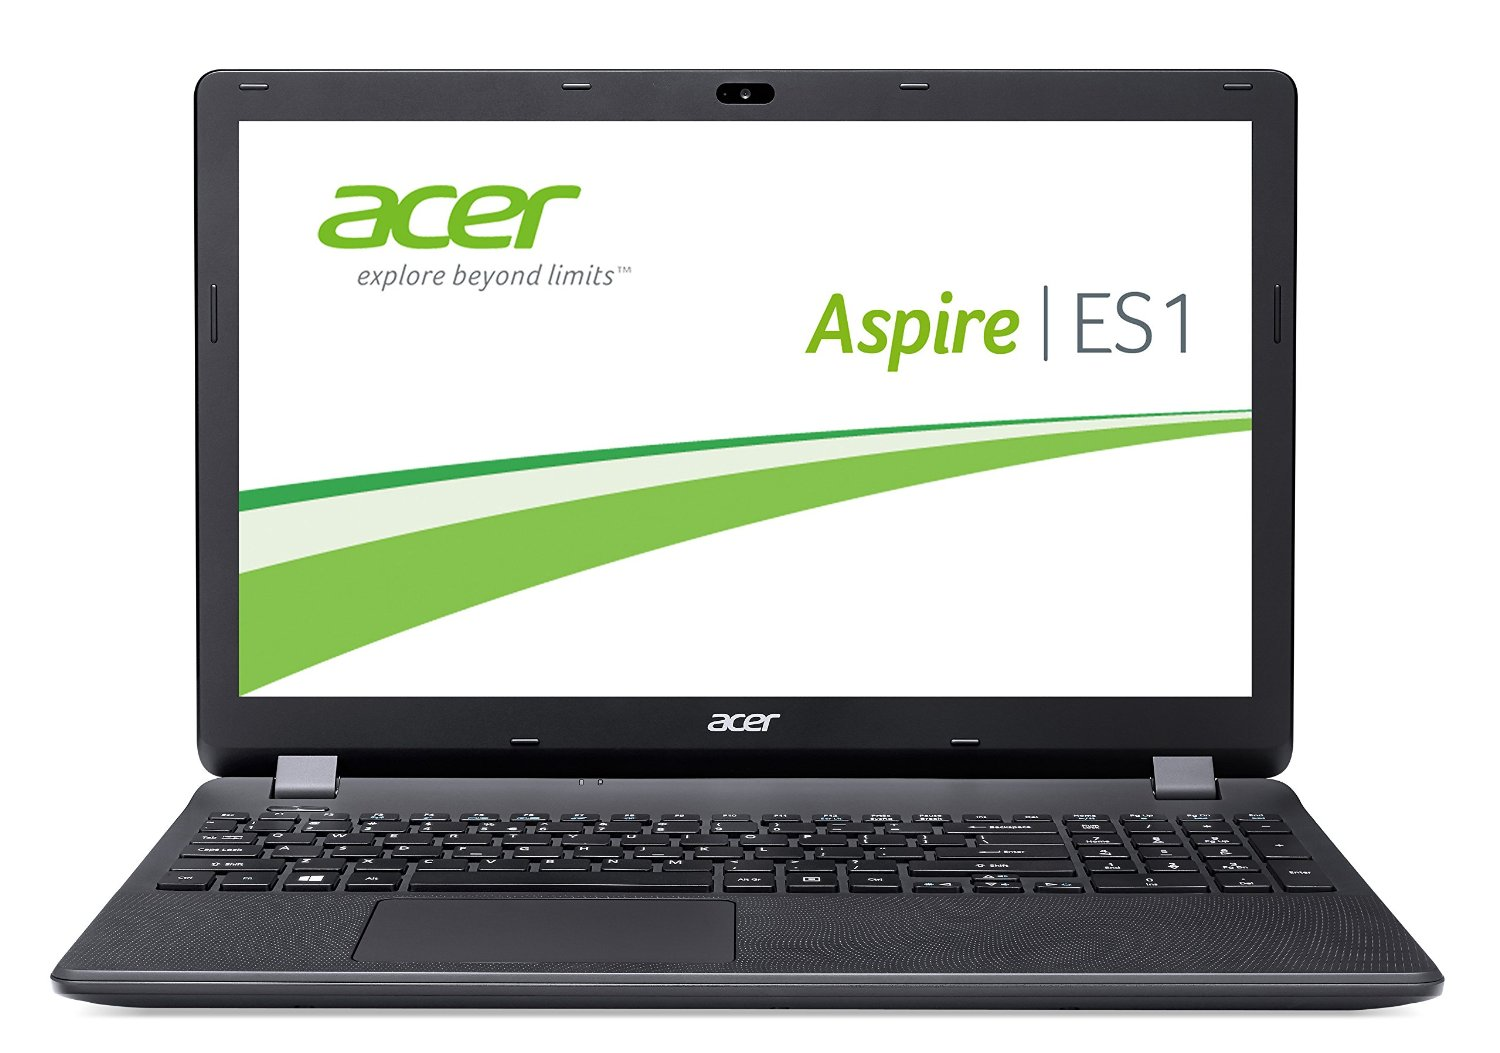 acer aspire es 15 test 2015 review und vergleich. Black Bedroom Furniture Sets. Home Design Ideas